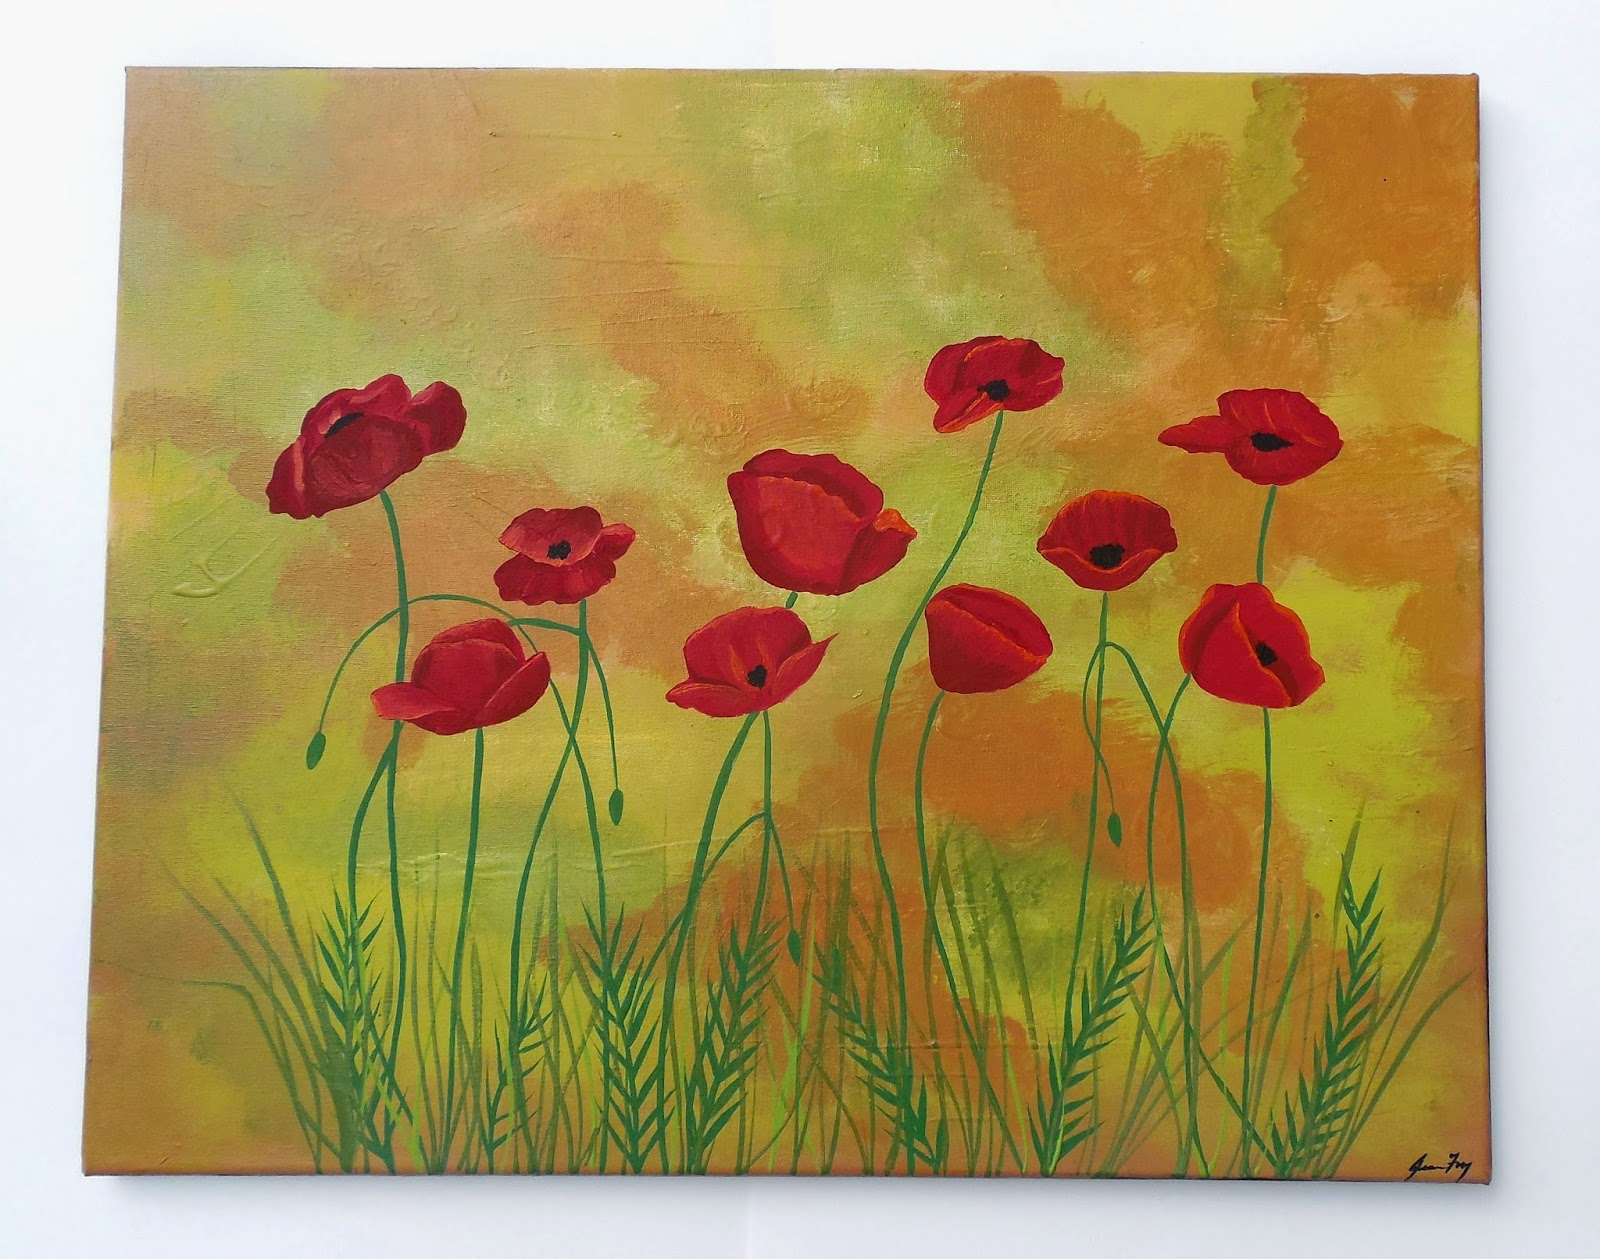 Jeanne fry art red poppy flower symbolism this is my new original contemporary folk painting titled red poppies and is available in my etsy shop here mightylinksfo Gallery